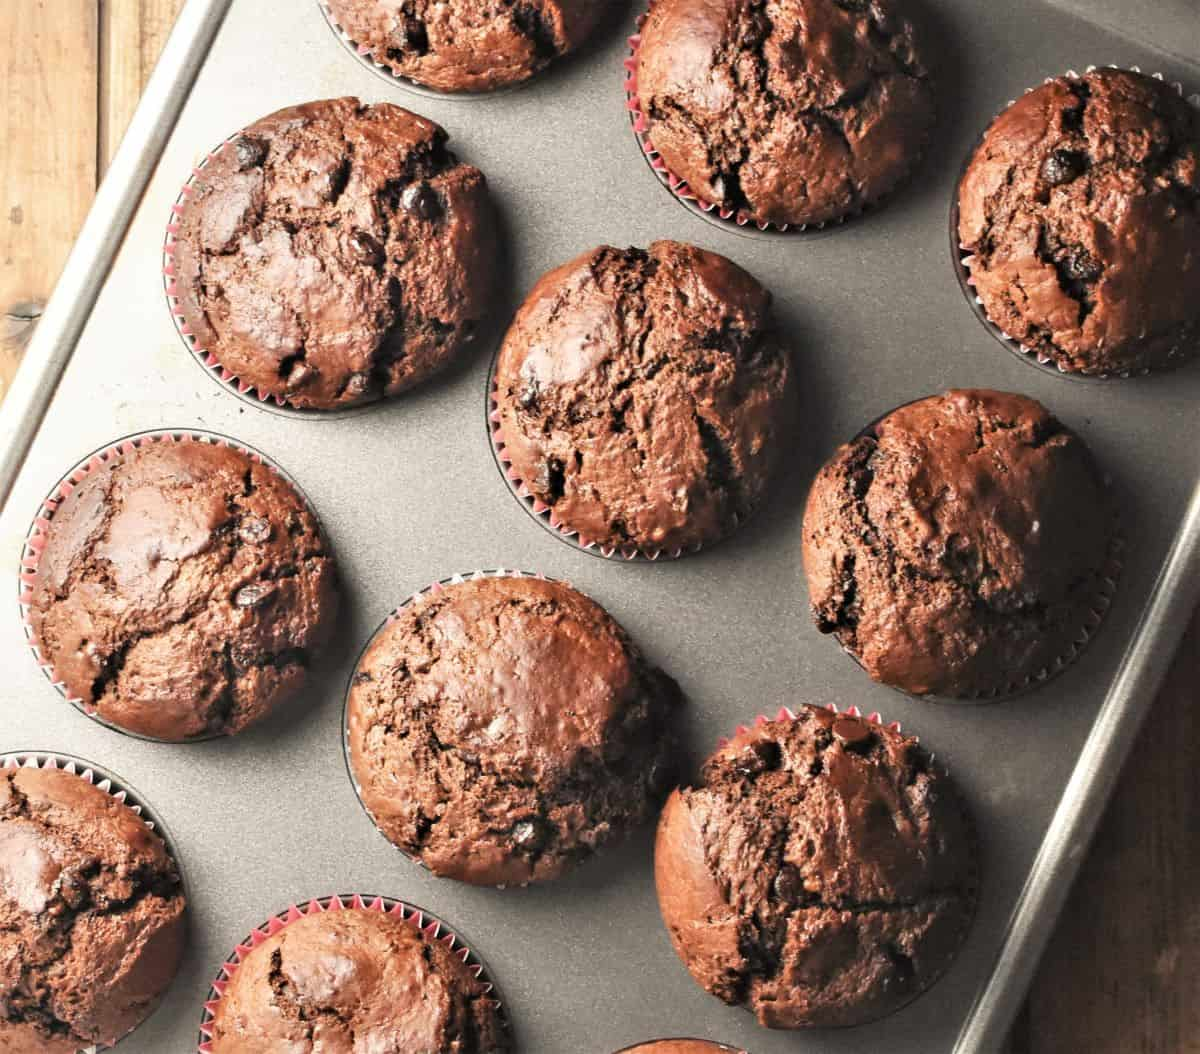 Top down view of chocolate muffins in muffin pan.